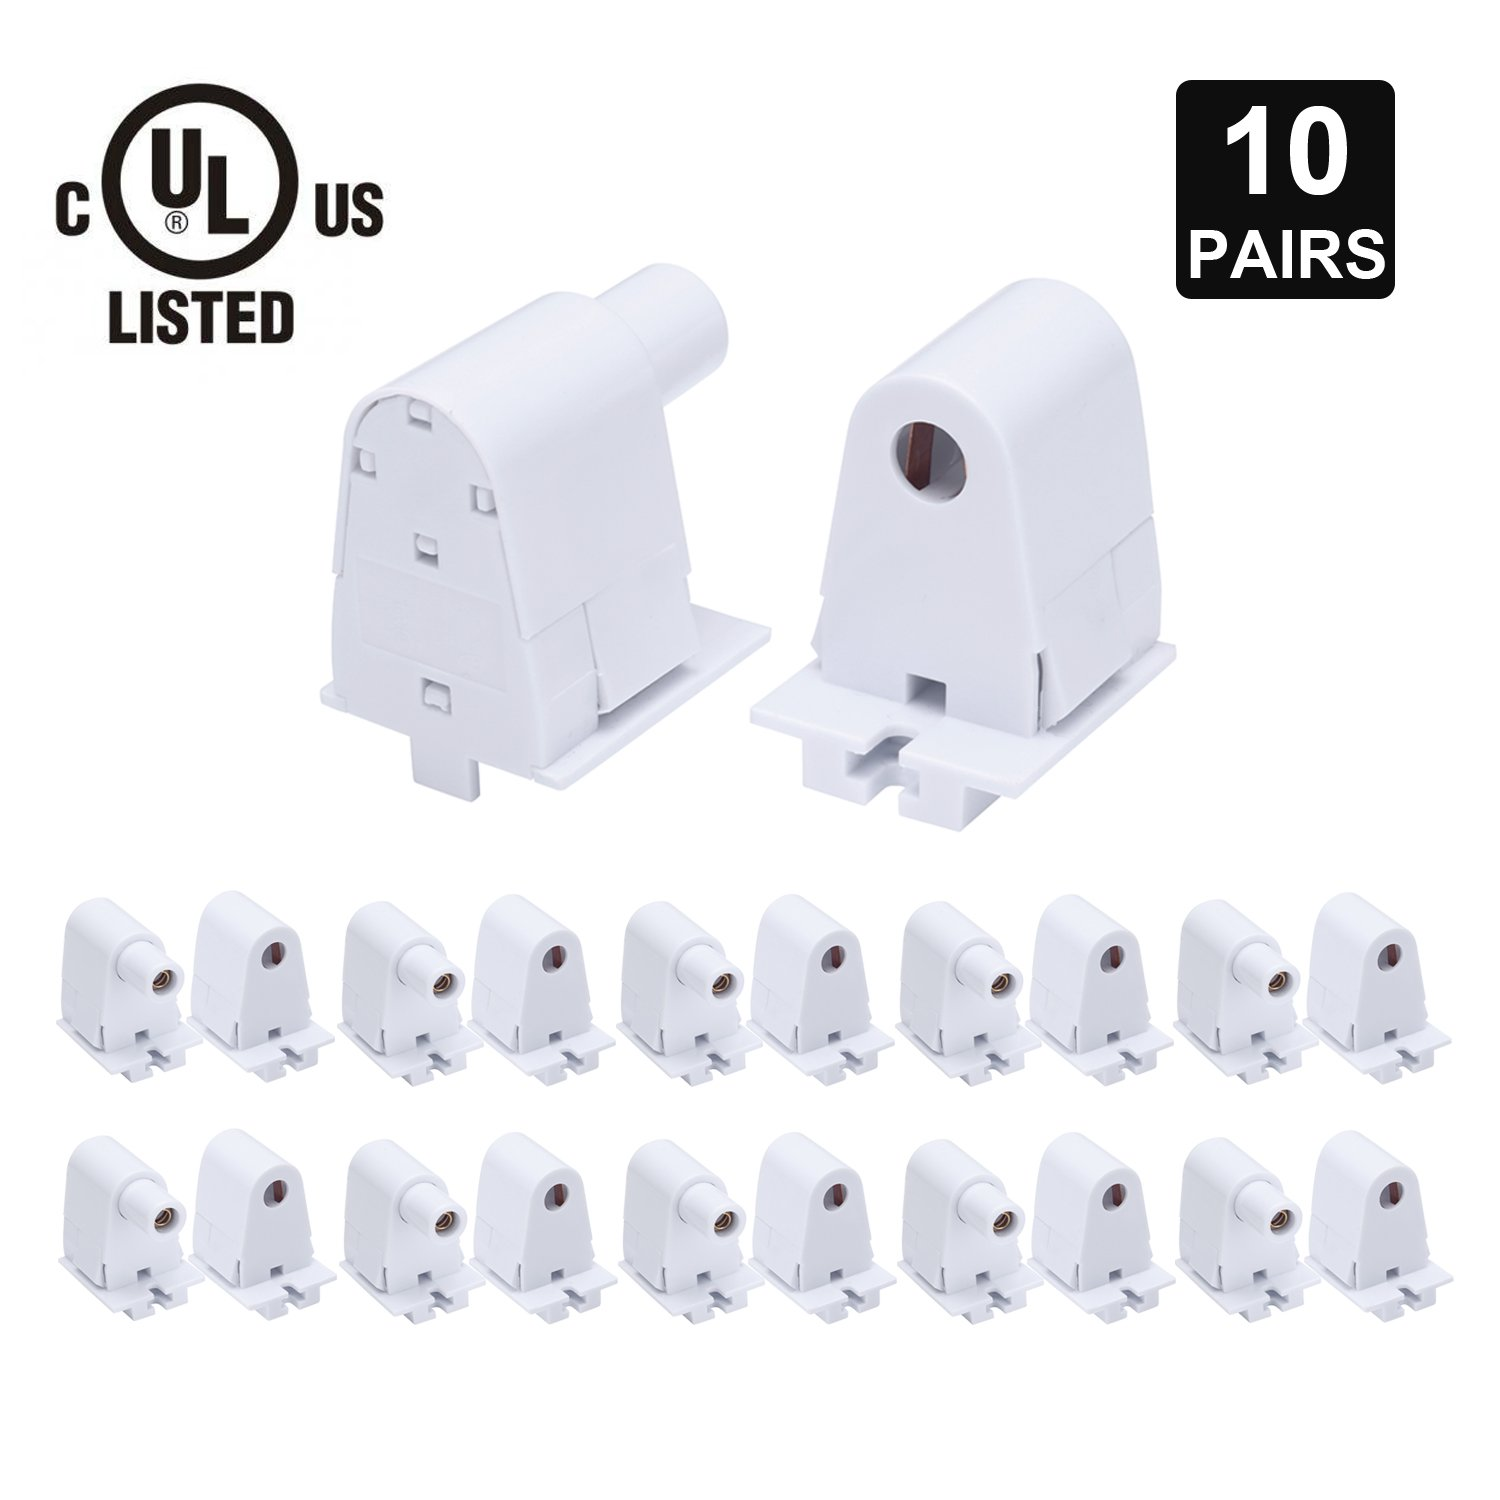 JOMITOP 10 Pairs Tombstone Base Holder Socket Connector with T8 Single Pin FA8 8ft LED Bulb Light Replacement Fluorescent Plunger